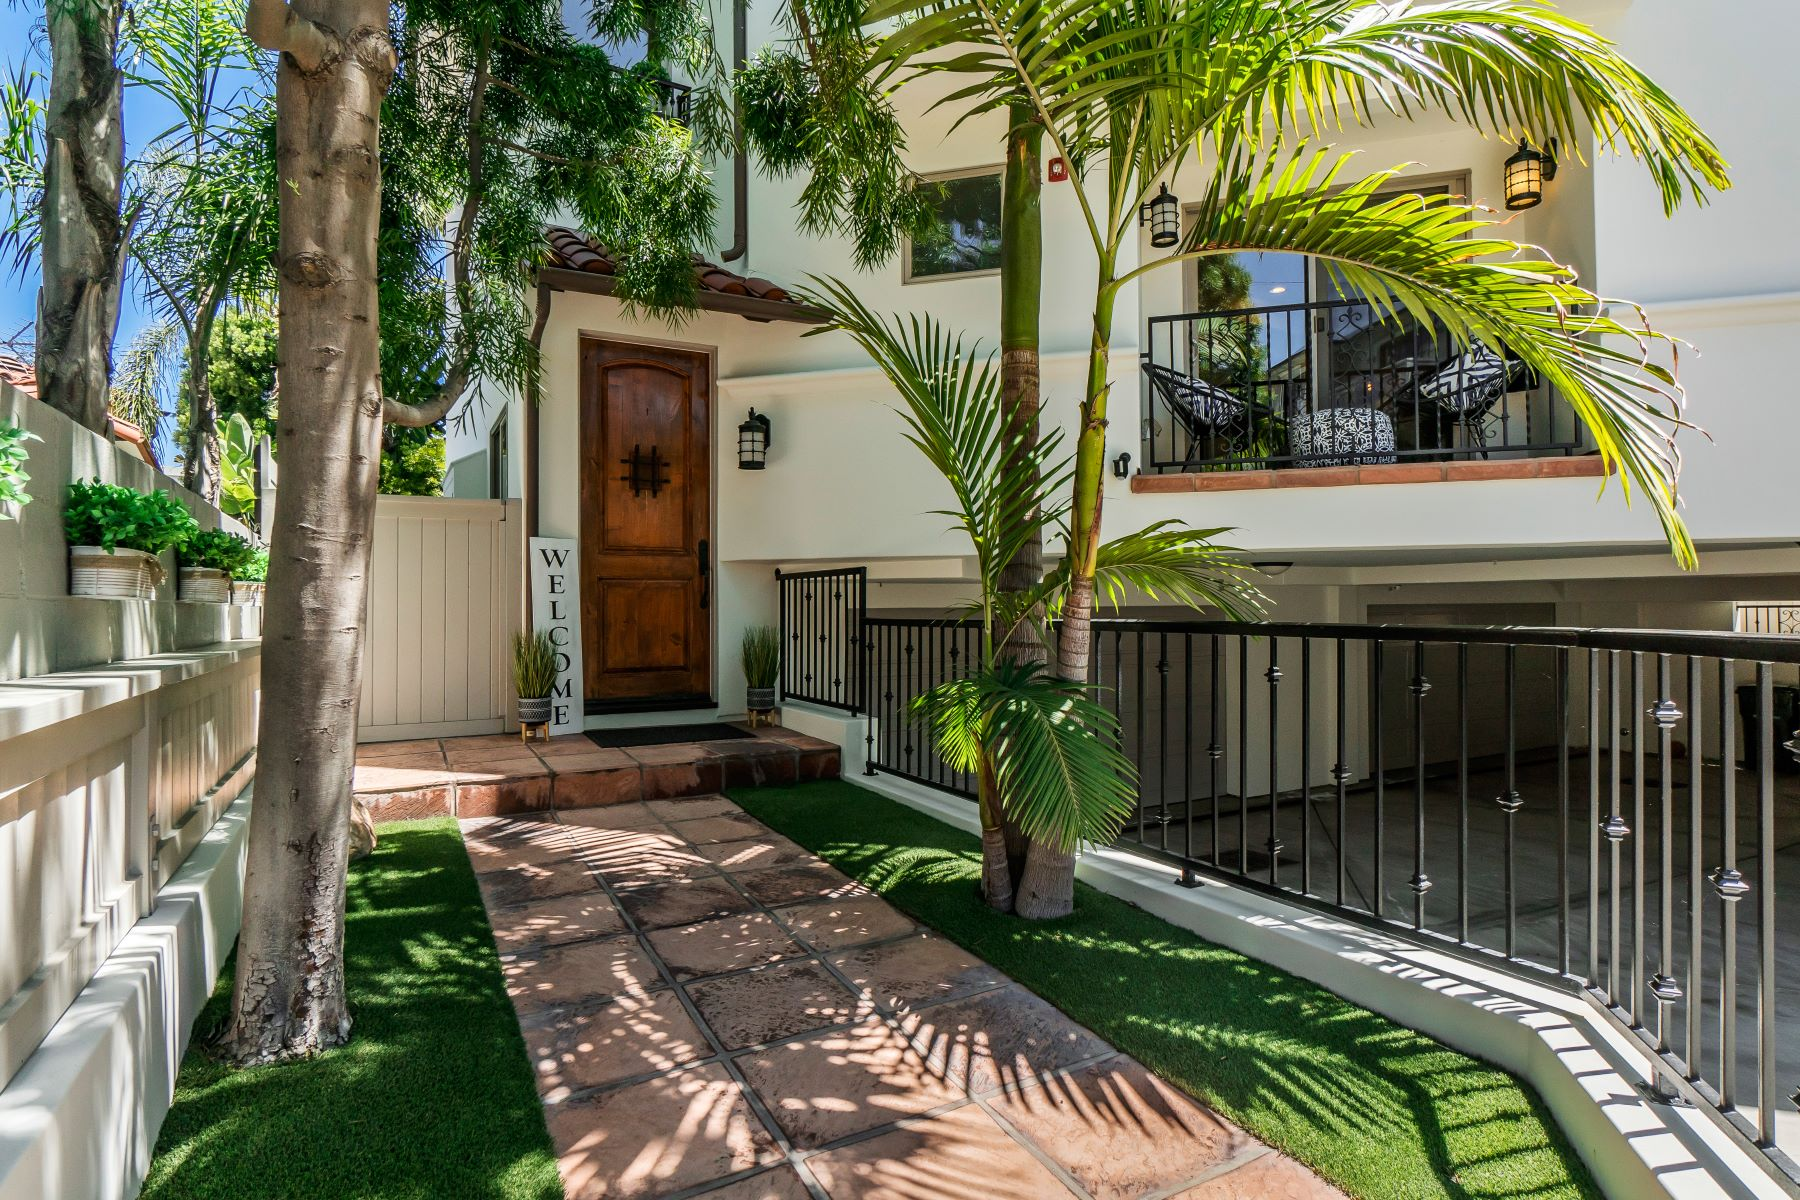 townhouses for Active at 1126 Laurel Avenue, Manhattan Beach, CA 90266 1126 Laurel Avenue Manhattan Beach, California 90266 United States